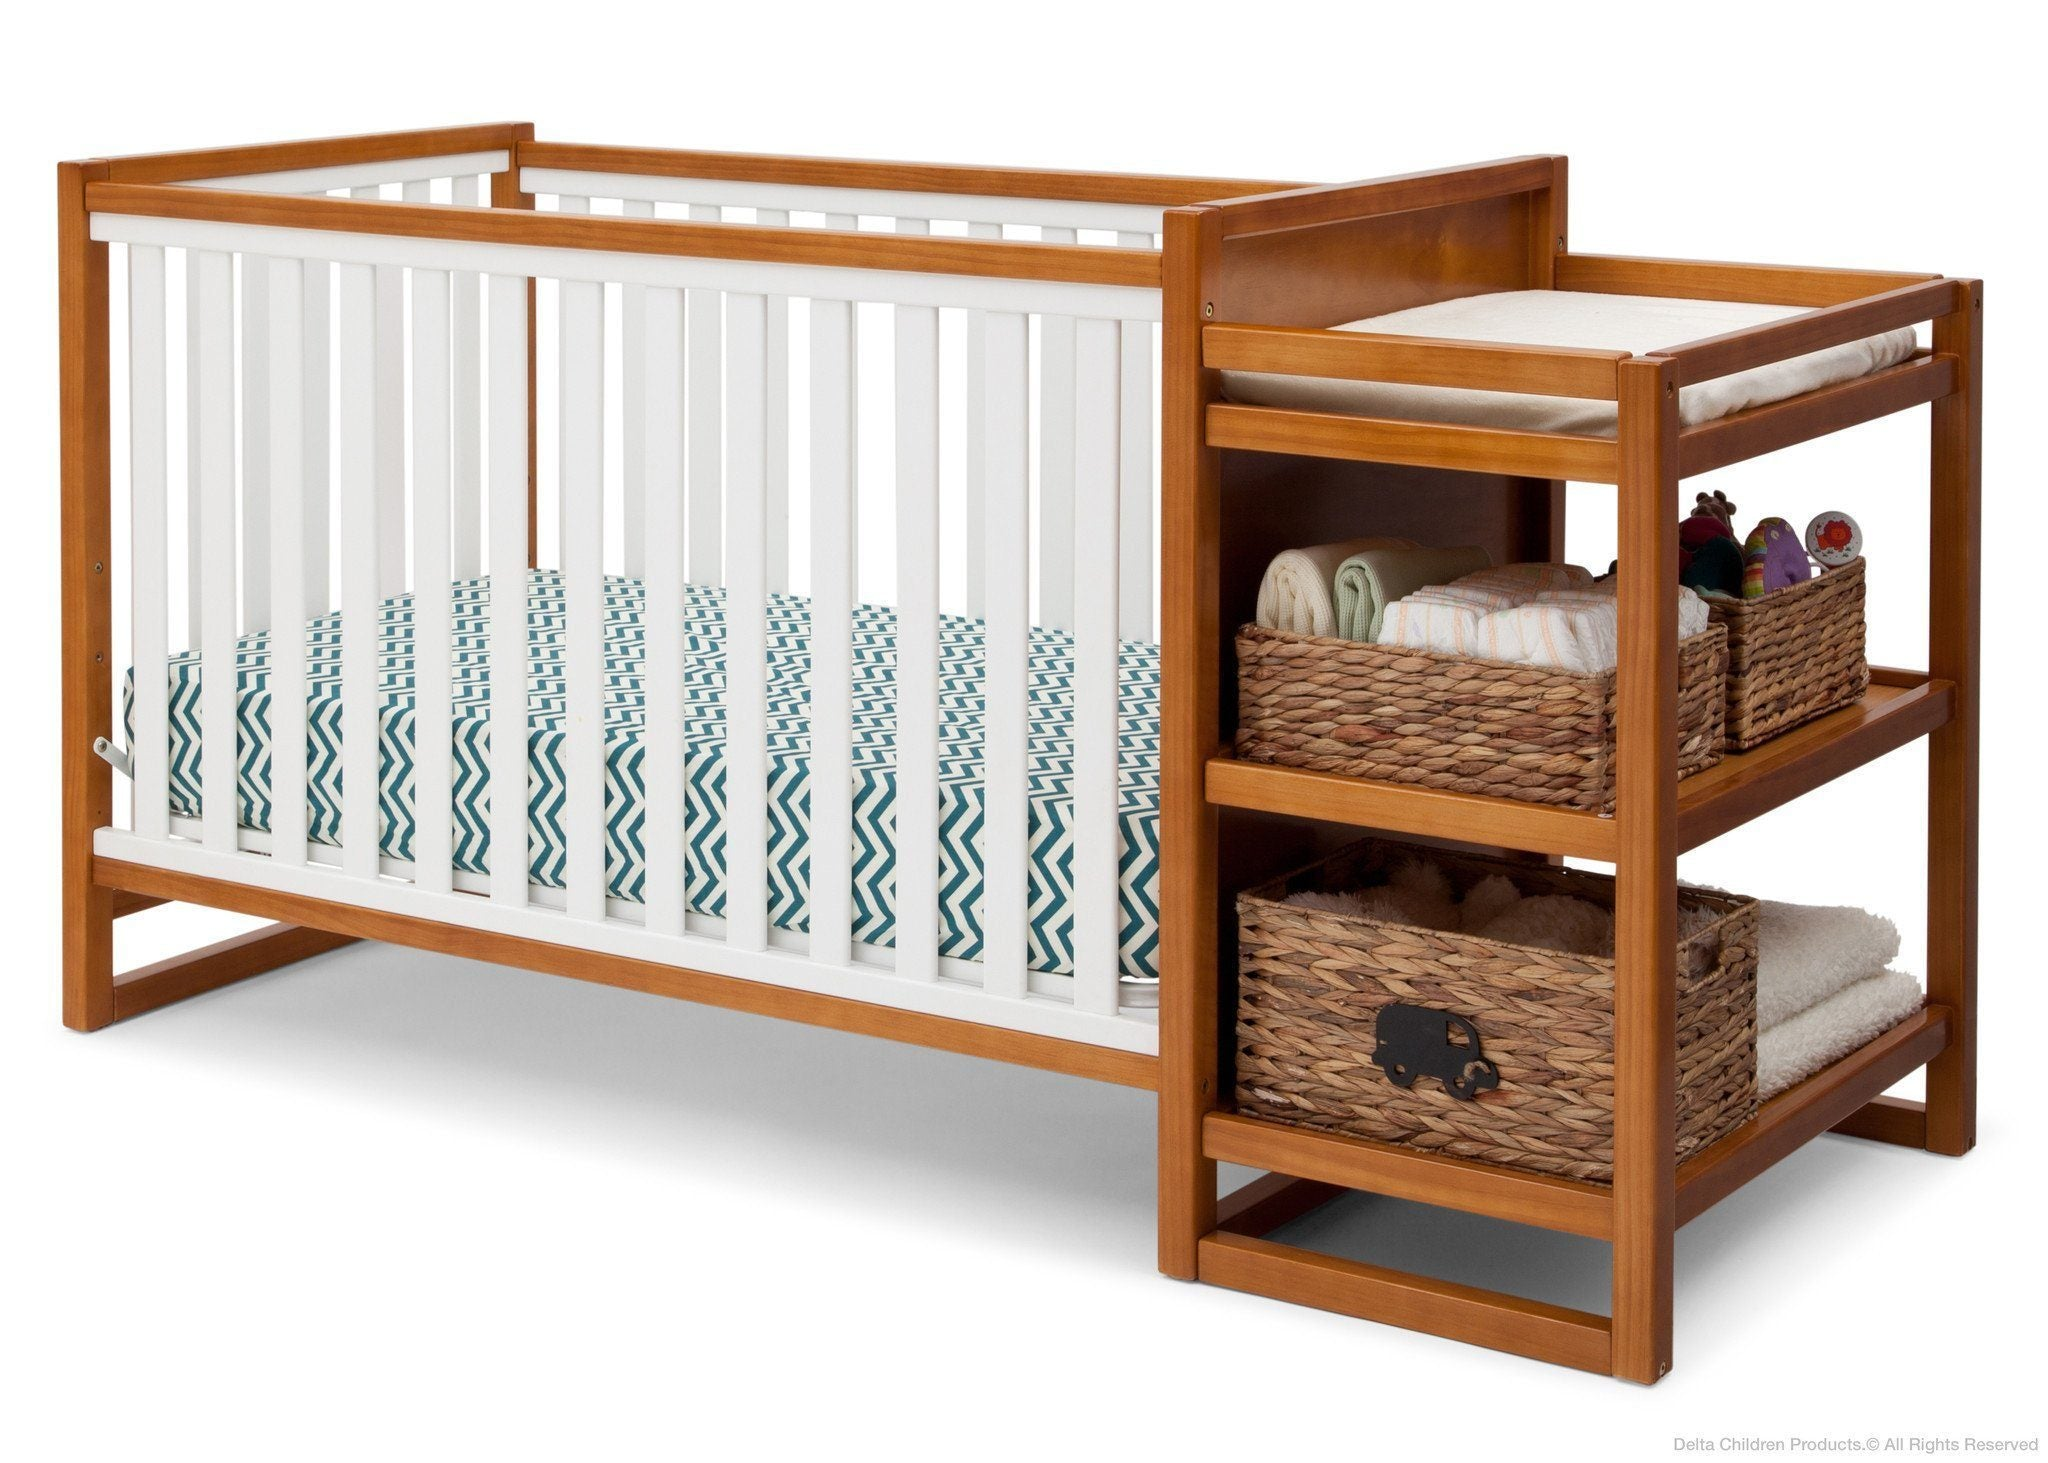 Delta Children Warm Honey / White (2053) Gramercy Crib 'N' Changer, Crib Conversion